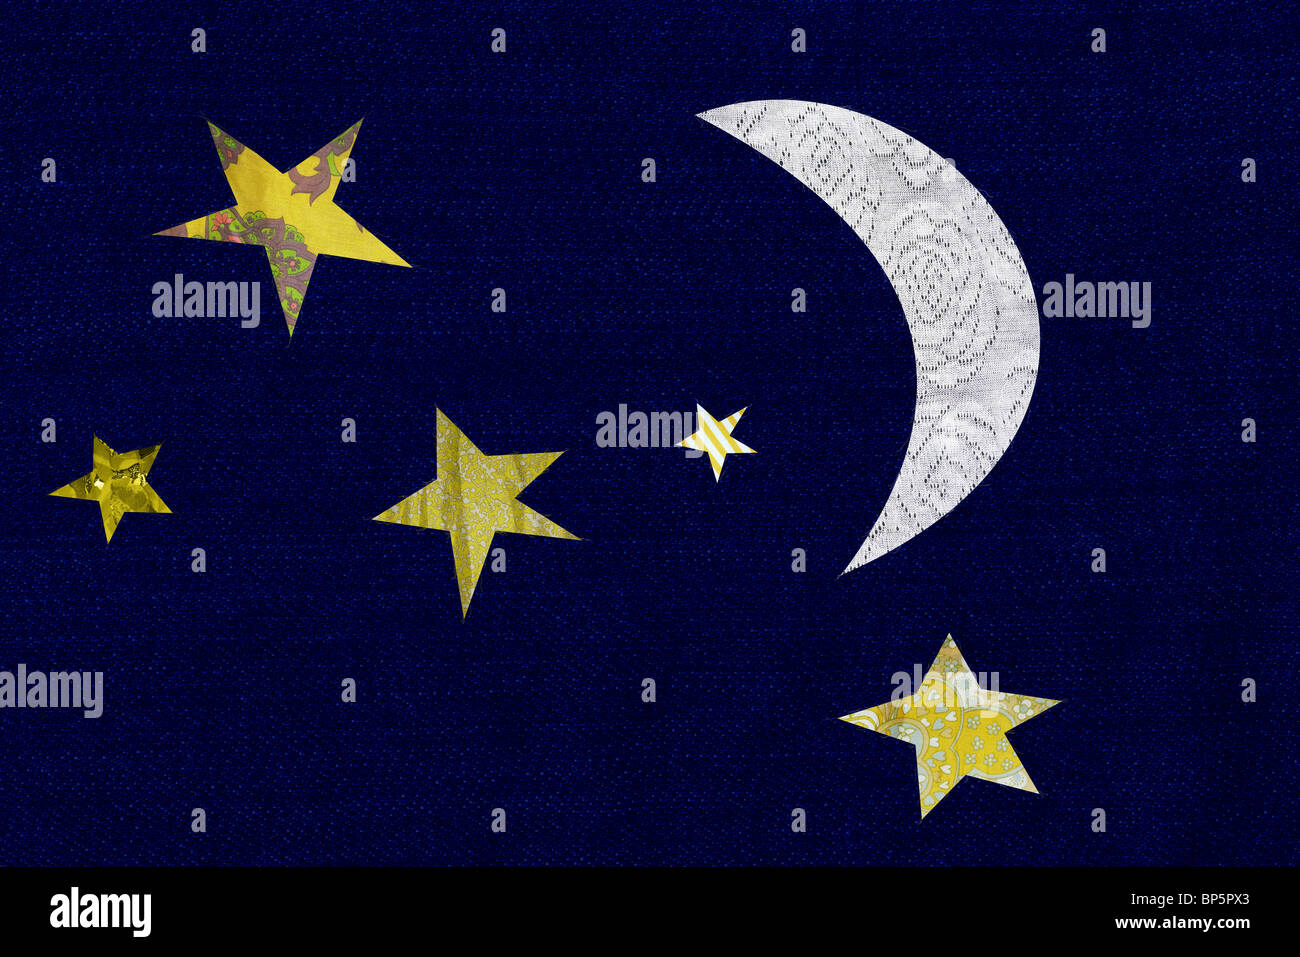 Crescent moon and stars - Stock Image